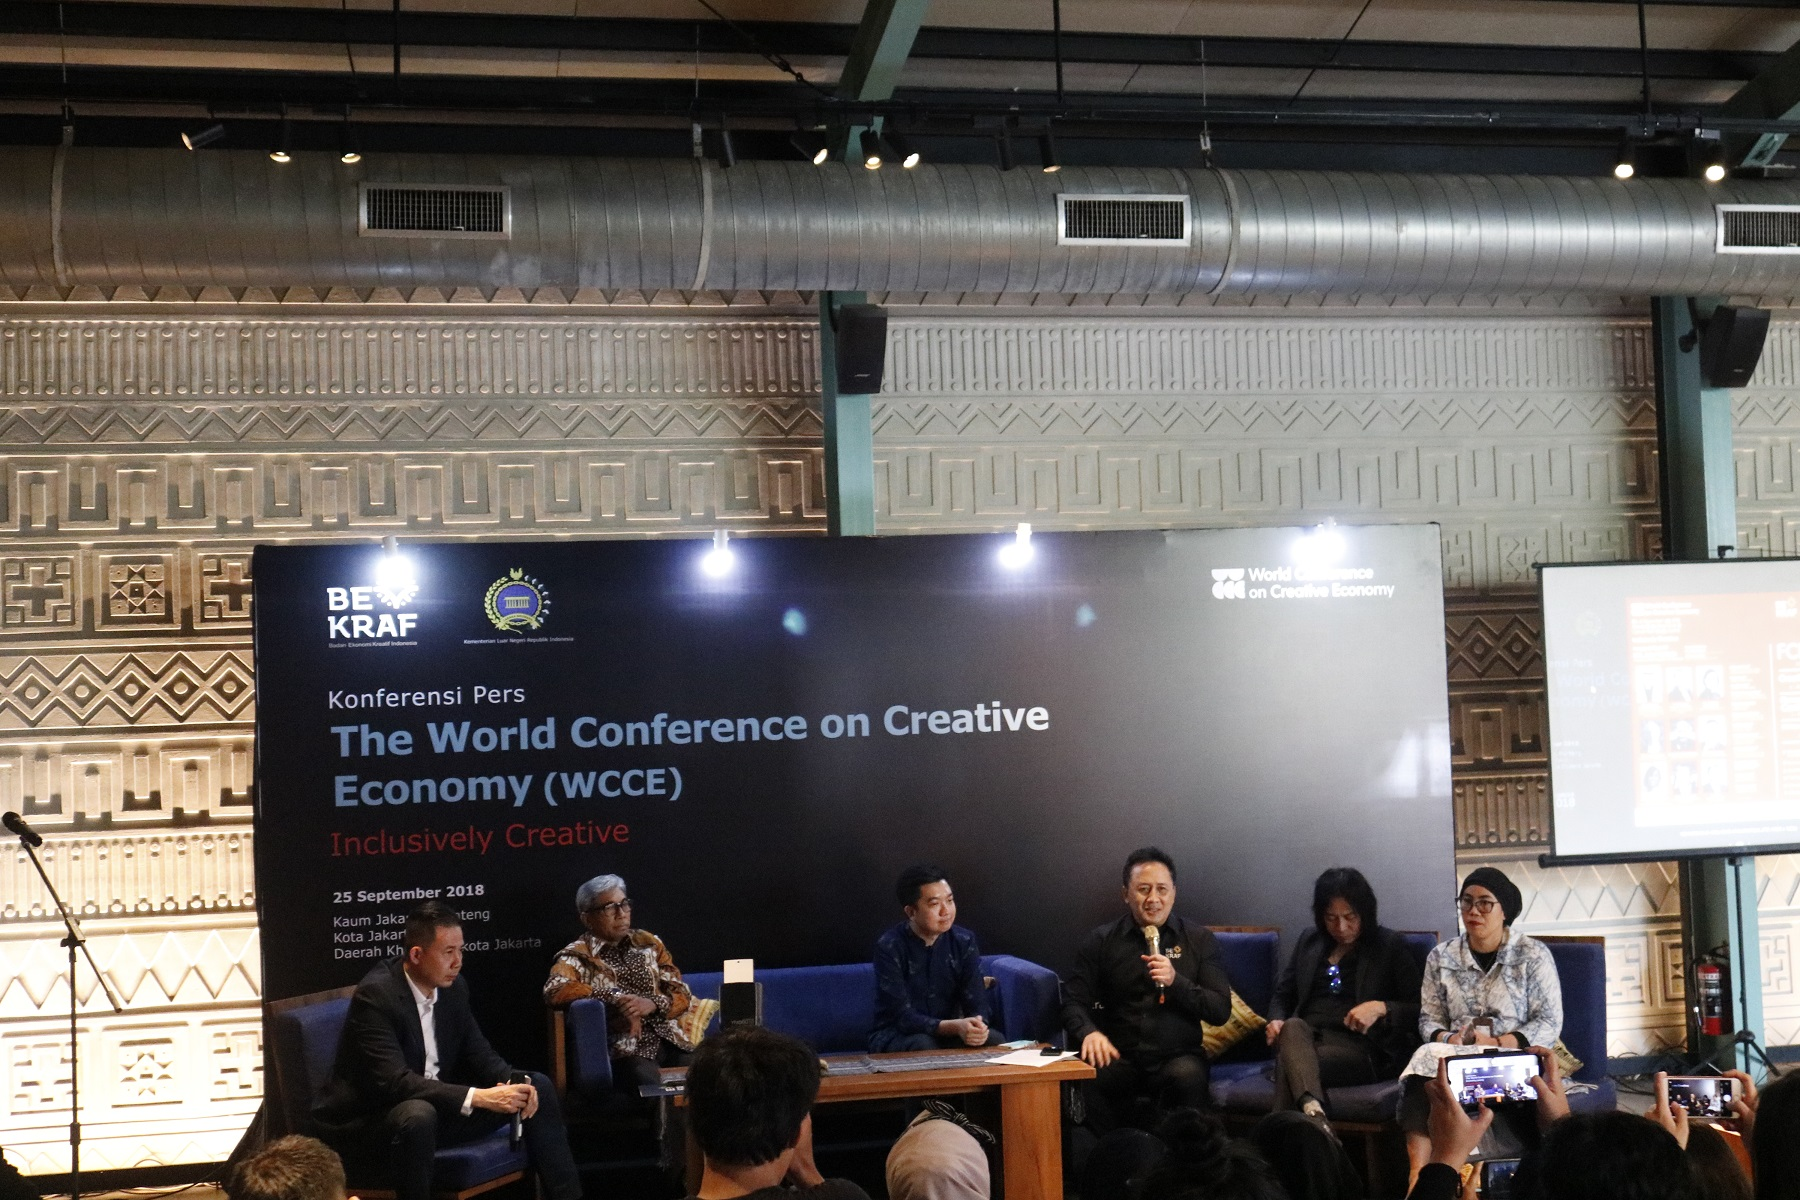 <a  style='text-decoration: none; font-weight:bold;' href=http://redwhitecommunication.com:80/index.php/_home/news/id/MTUz.php>BEKRAF DAN KEMLU GELAR  WORLD CONFERENCE ON CREATIVE ECONOMY (WCCE) 2018</a>